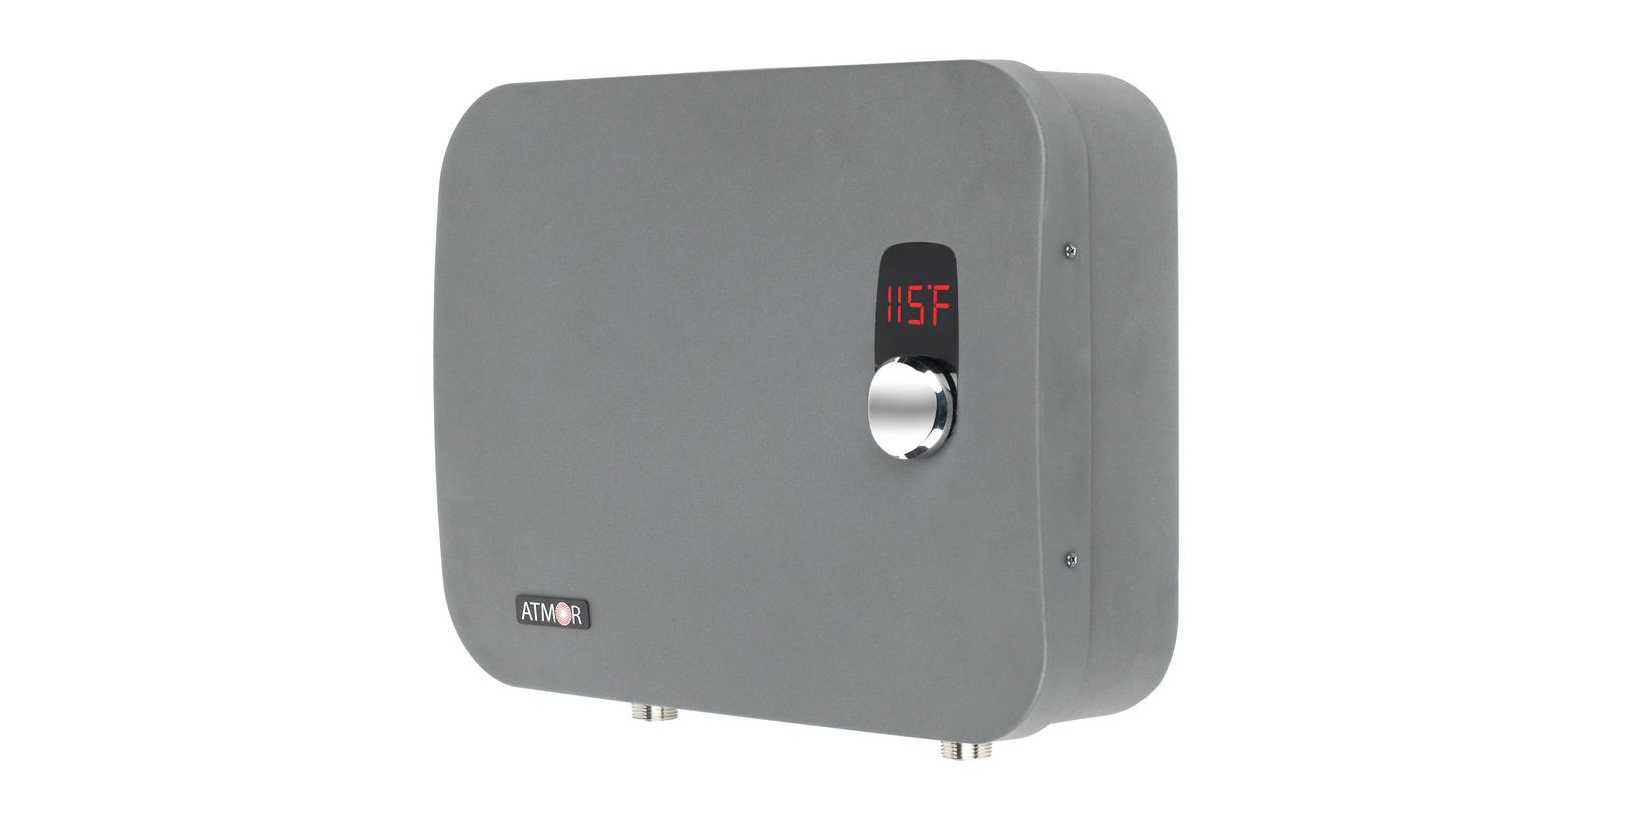 Home Depot's tankless water heater sale upgrades your setup from $95 - 9to5Toys